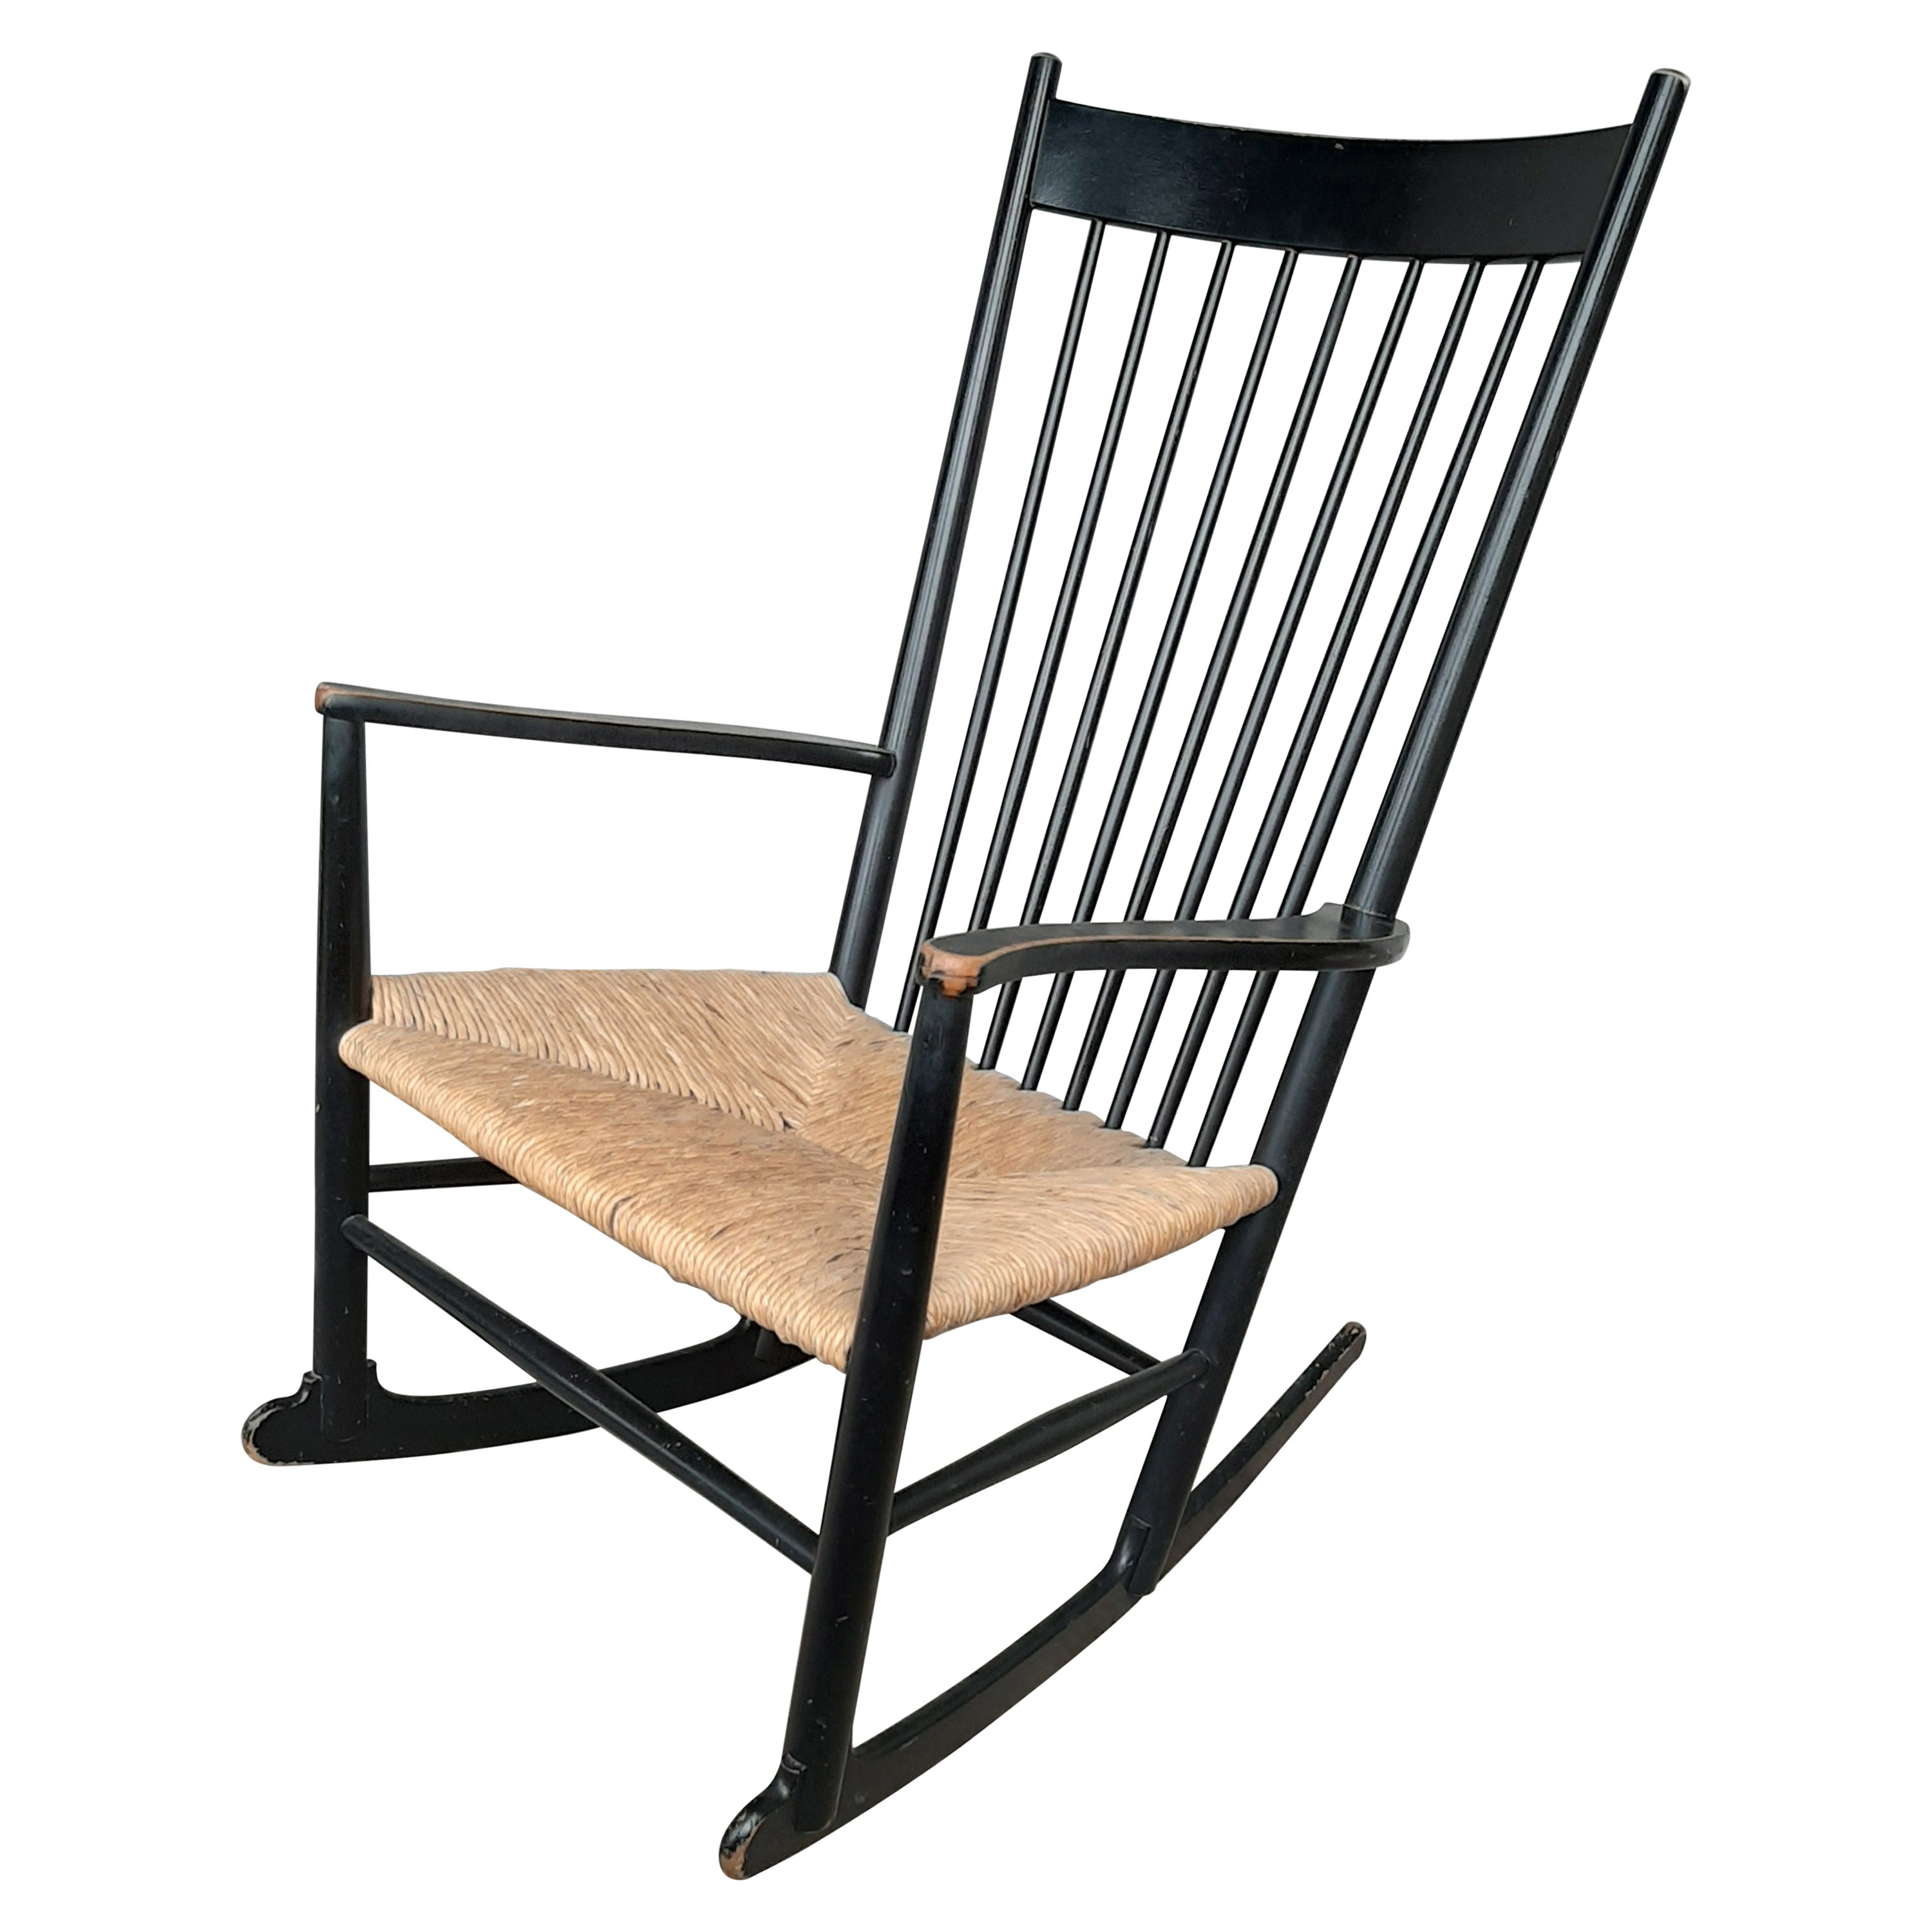 Hans Wegner Rocking Chair Model J16 in Painted Beech with Woven Paper Cord Seat